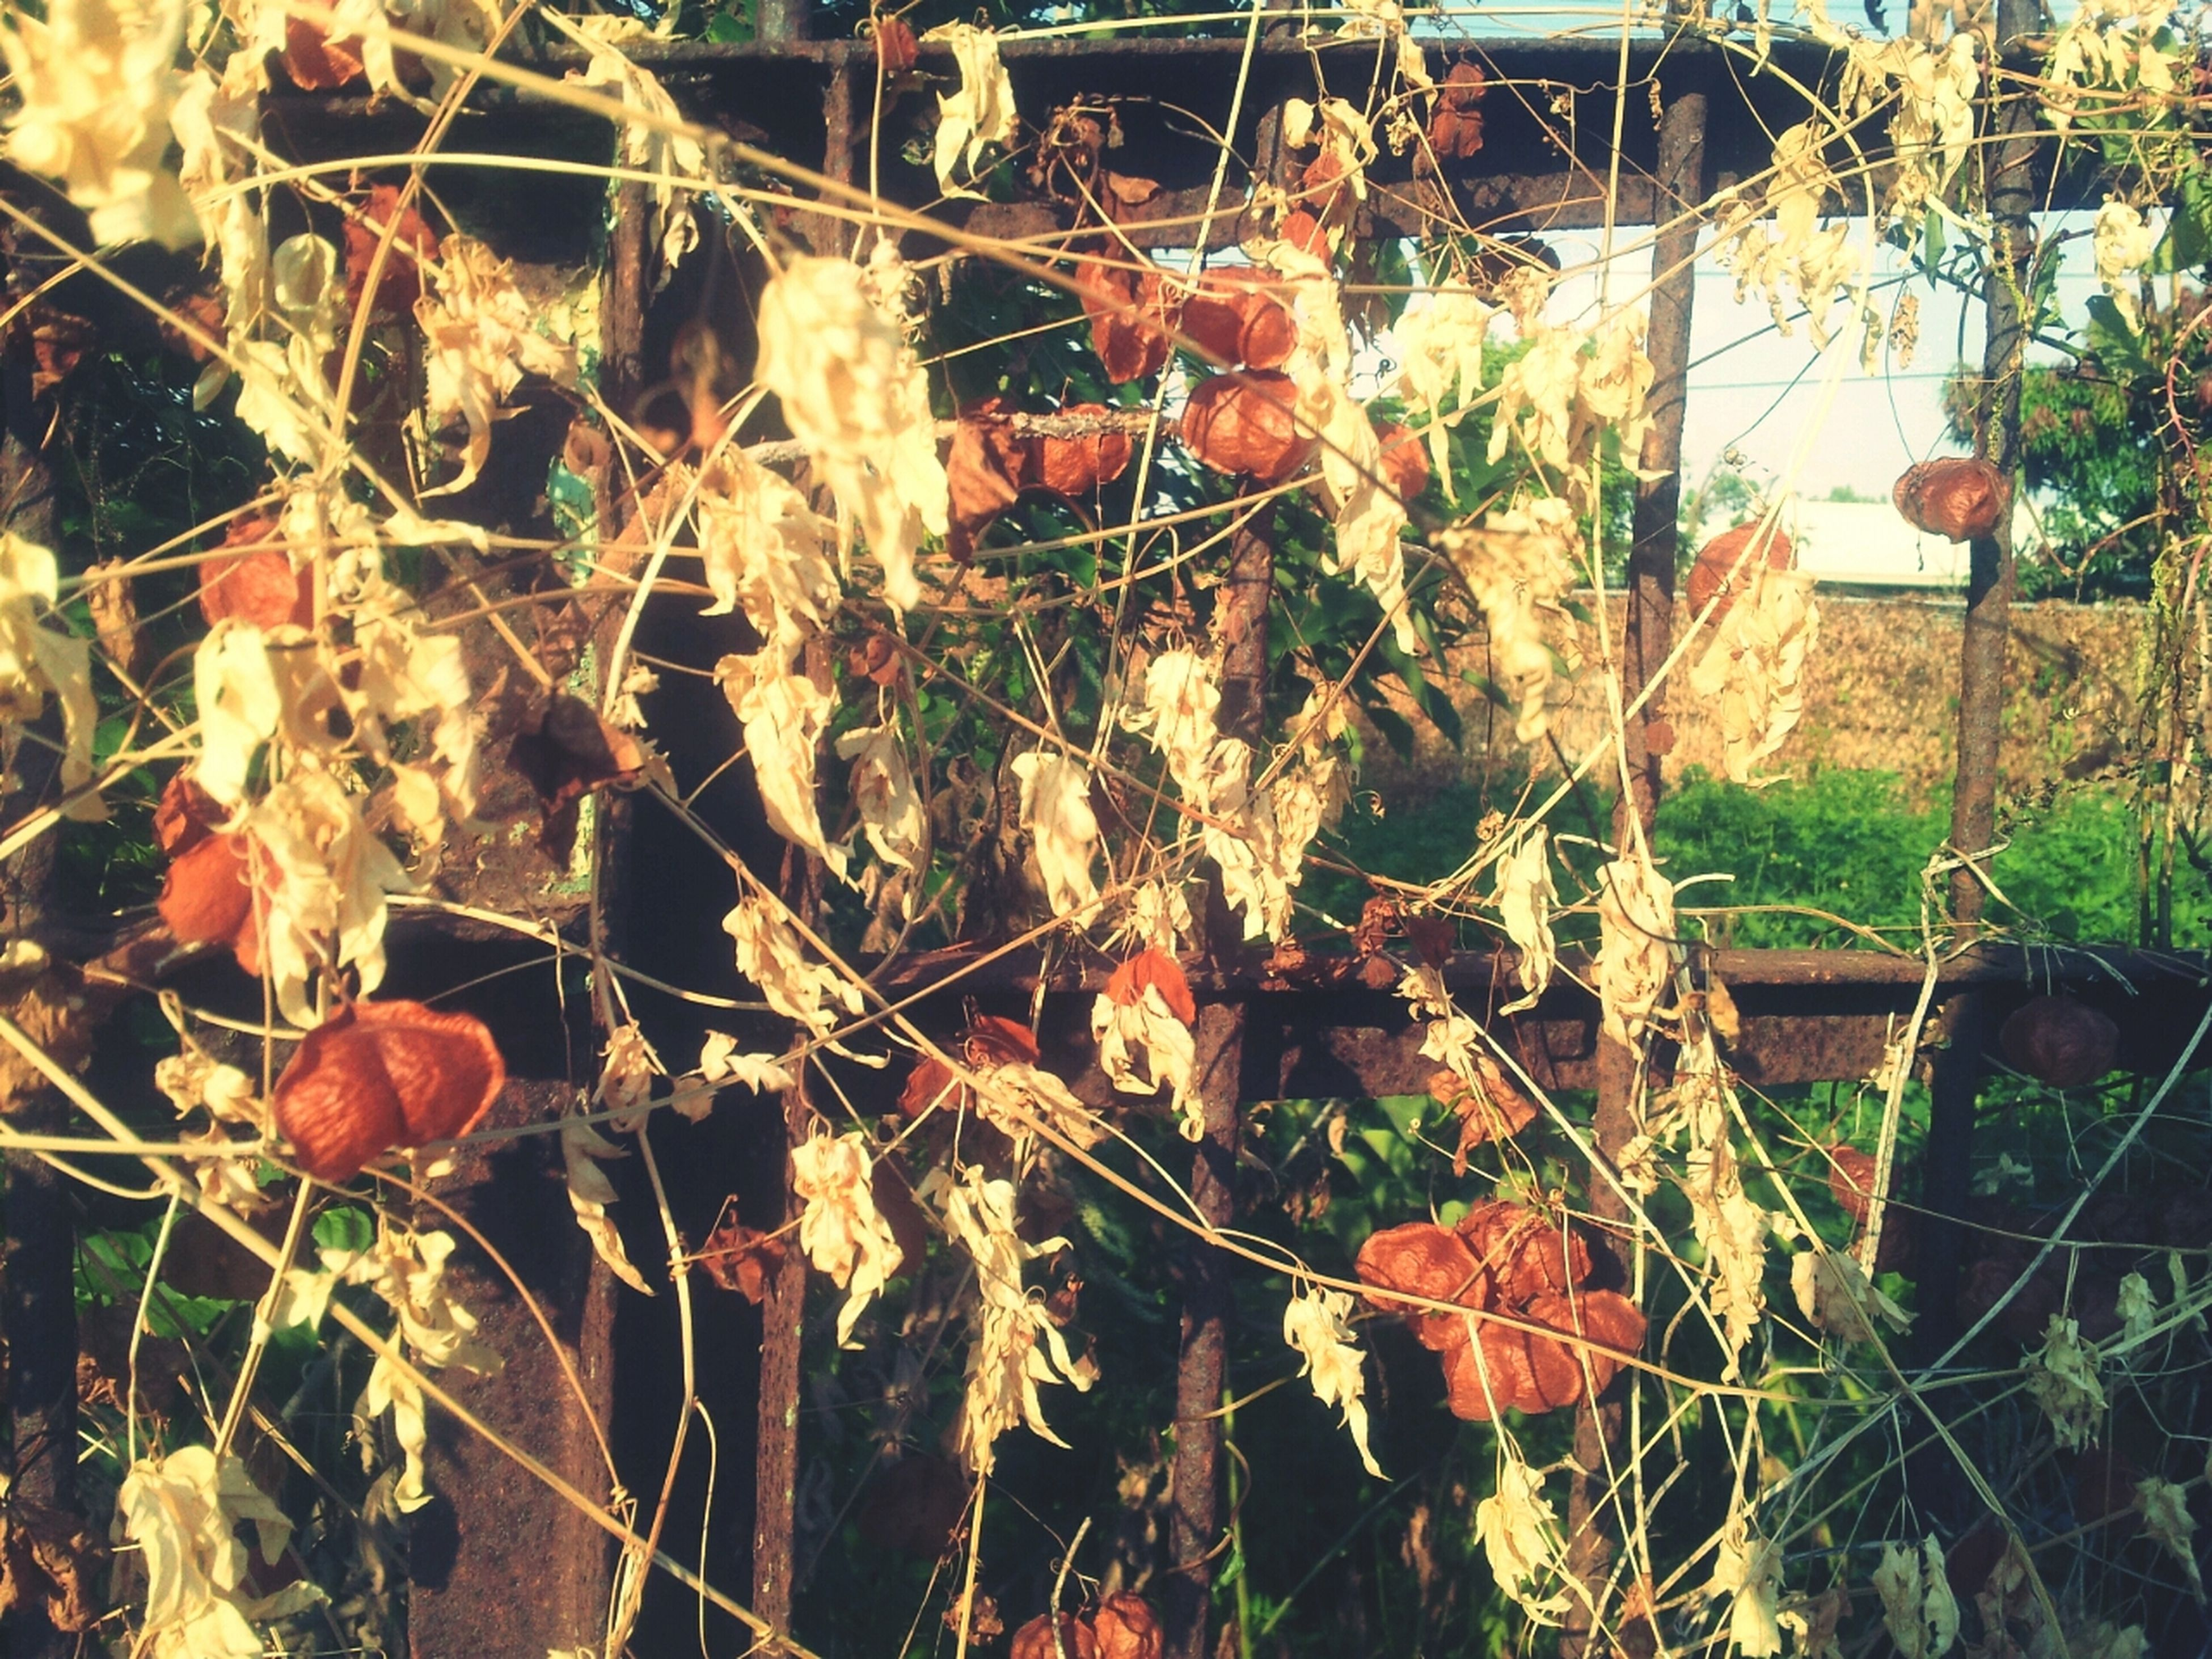 plant, growth, leaf, close-up, red, day, branch, outdoors, nature, front or back yard, no people, focus on foreground, building exterior, hanging, sunlight, built structure, fence, growing, architecture, dry